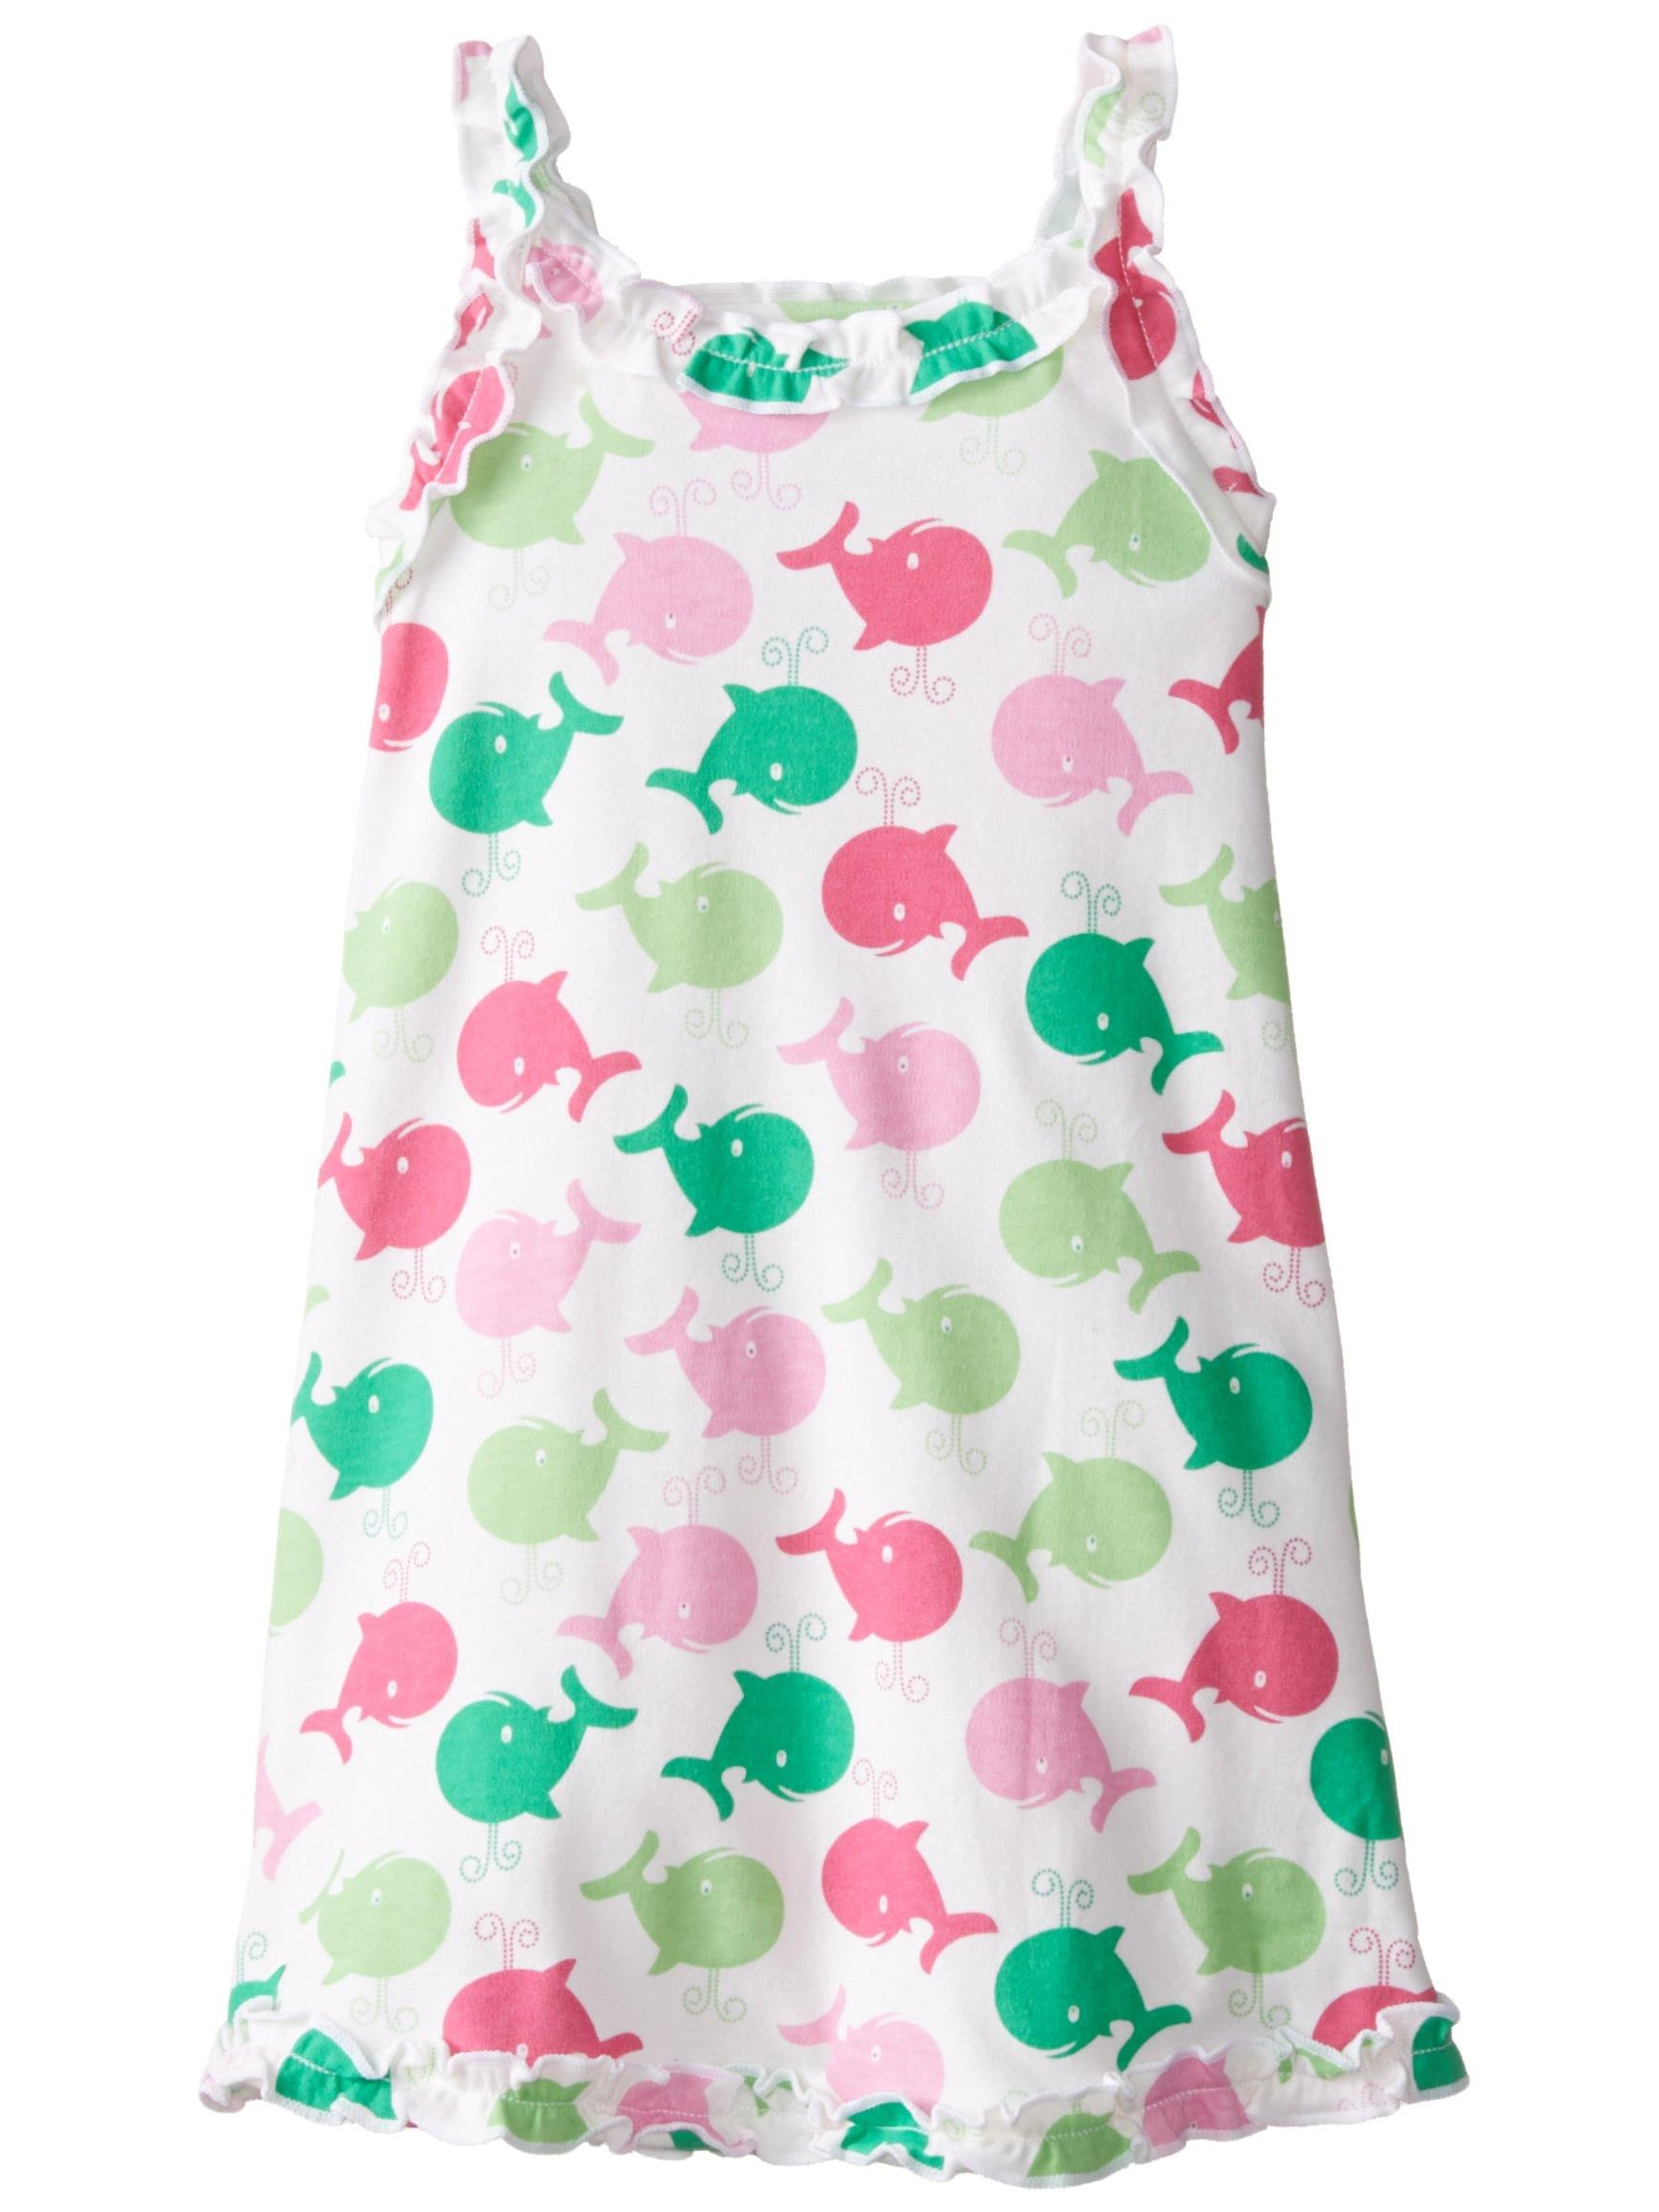 Sara's Prints Big Girls' Ruffle Tank Nightgown, Spouting Whales Pink, Size: 4